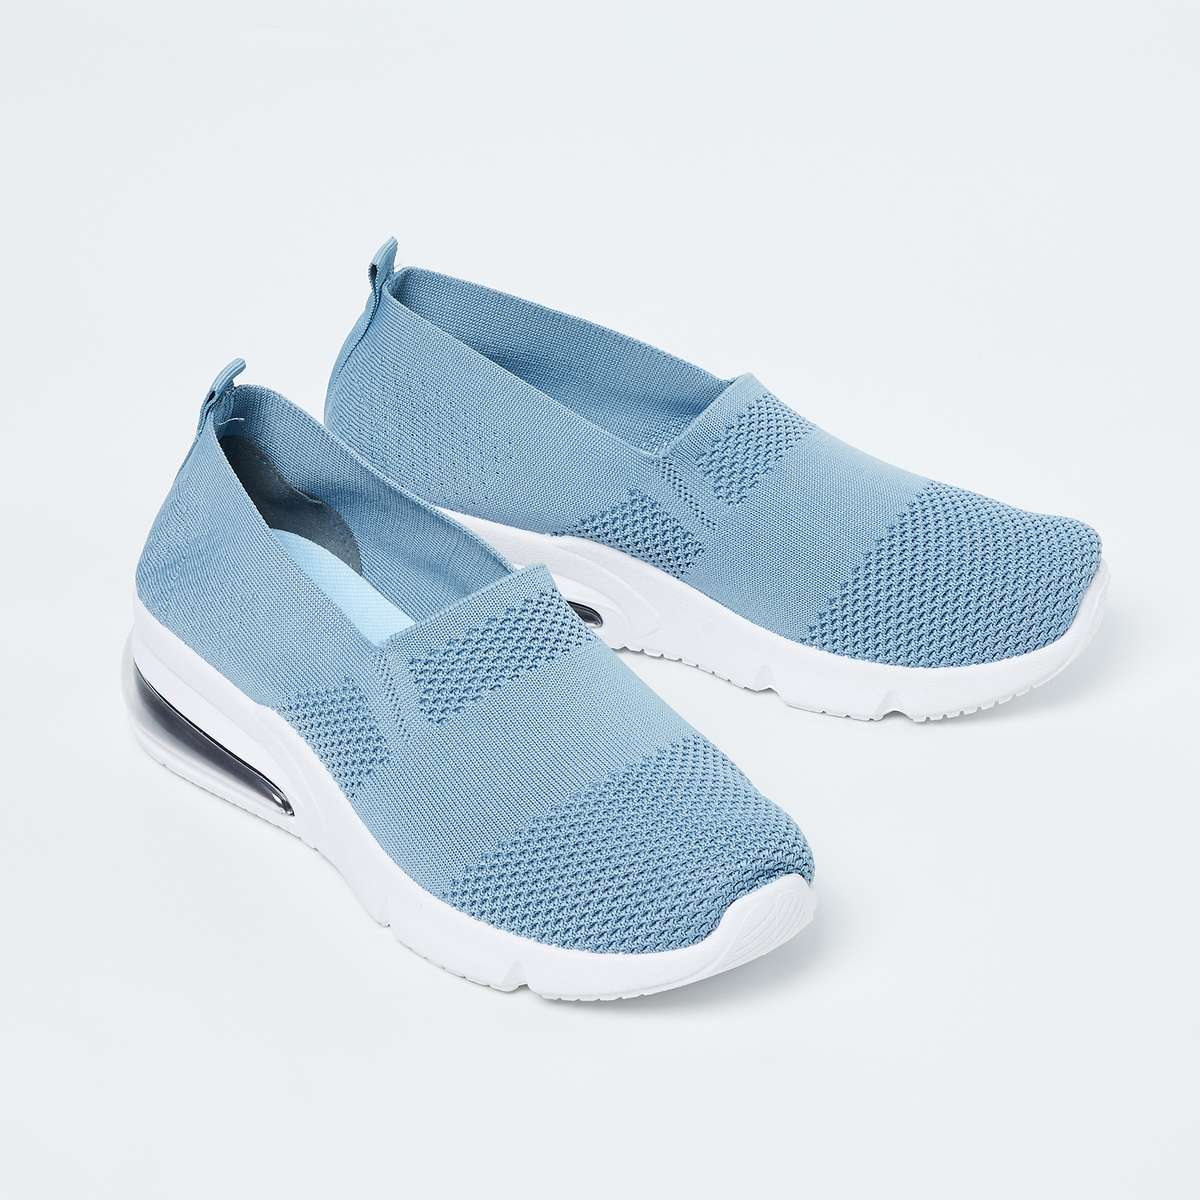 GINGER Patterned Knit Slip-On Shoes